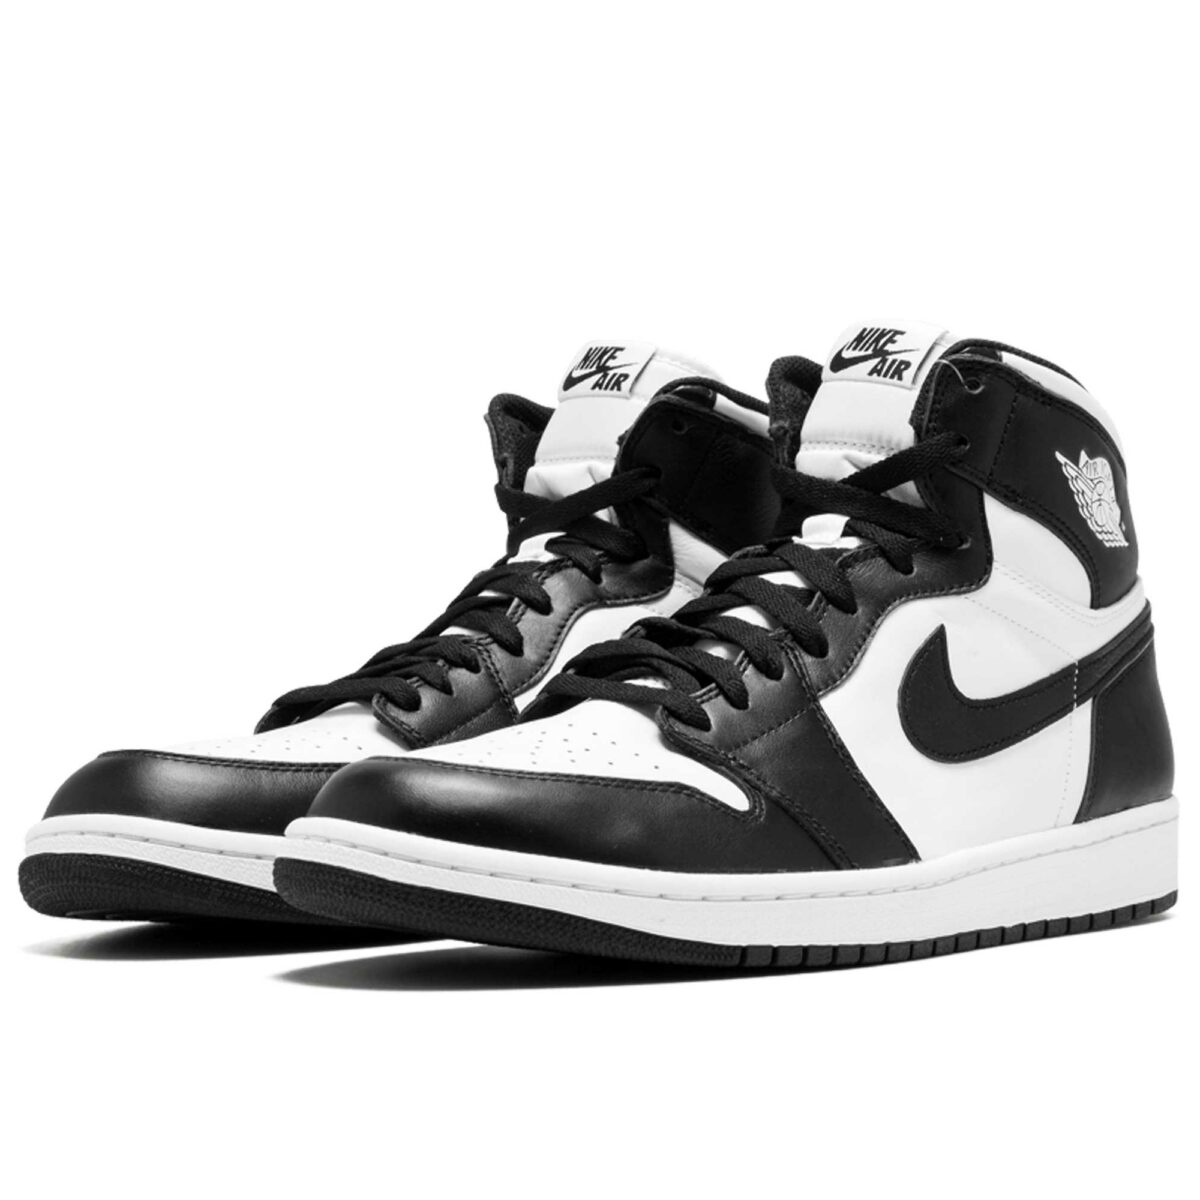 nike air Jordan 1 retro high og white black 555088_010 купить